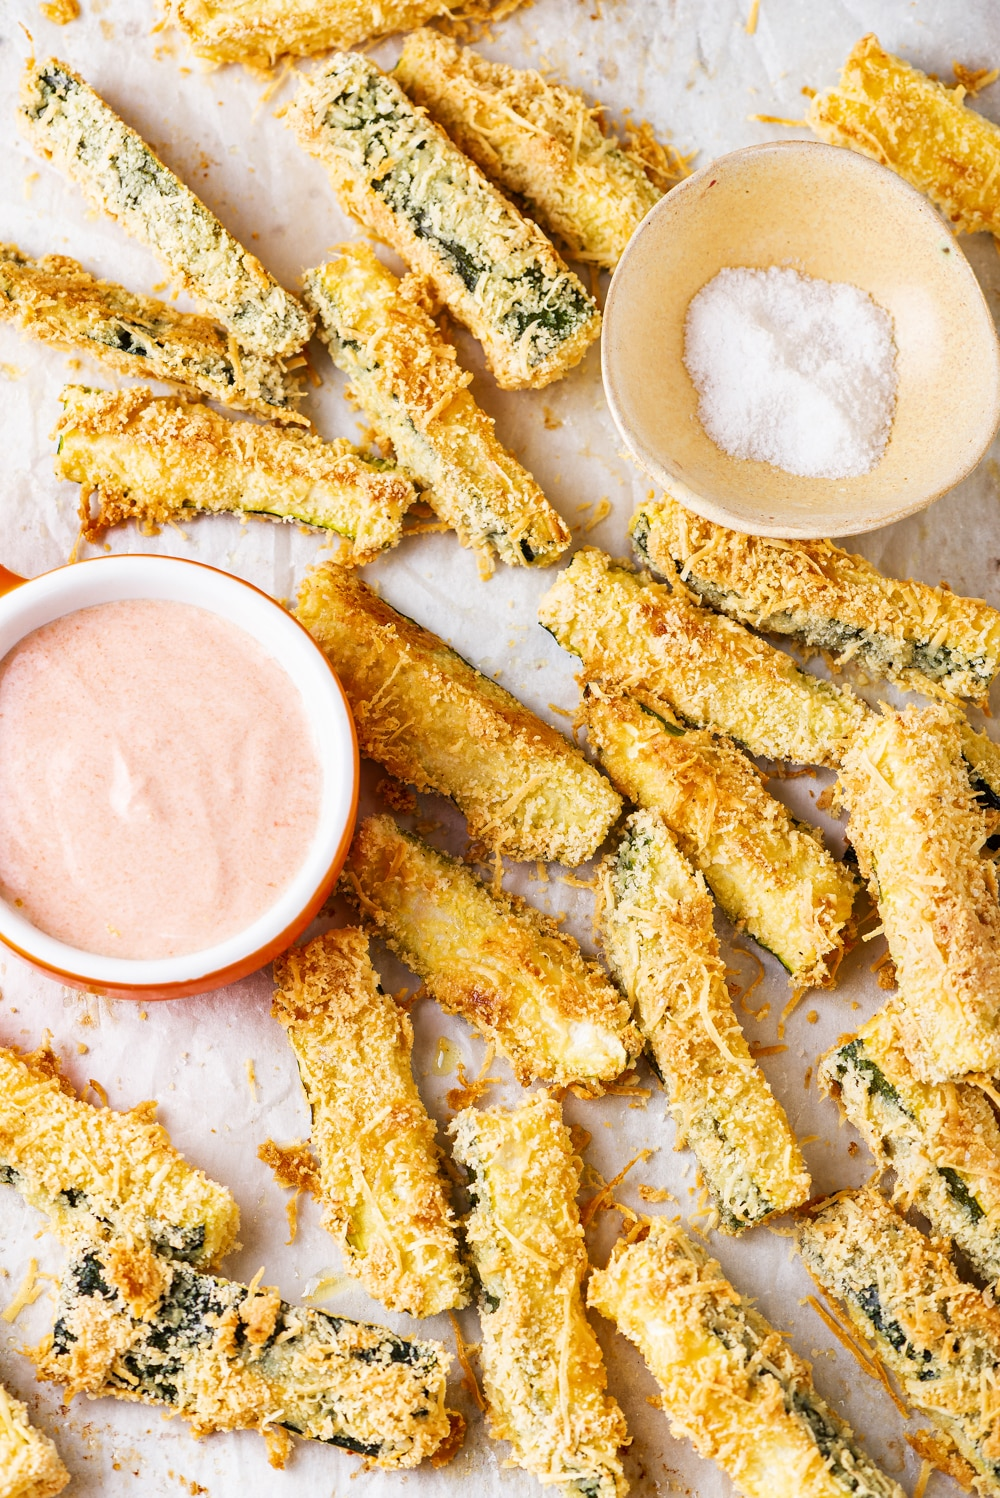 Zucchini fries on a tray with two small cups of dipping sauces.